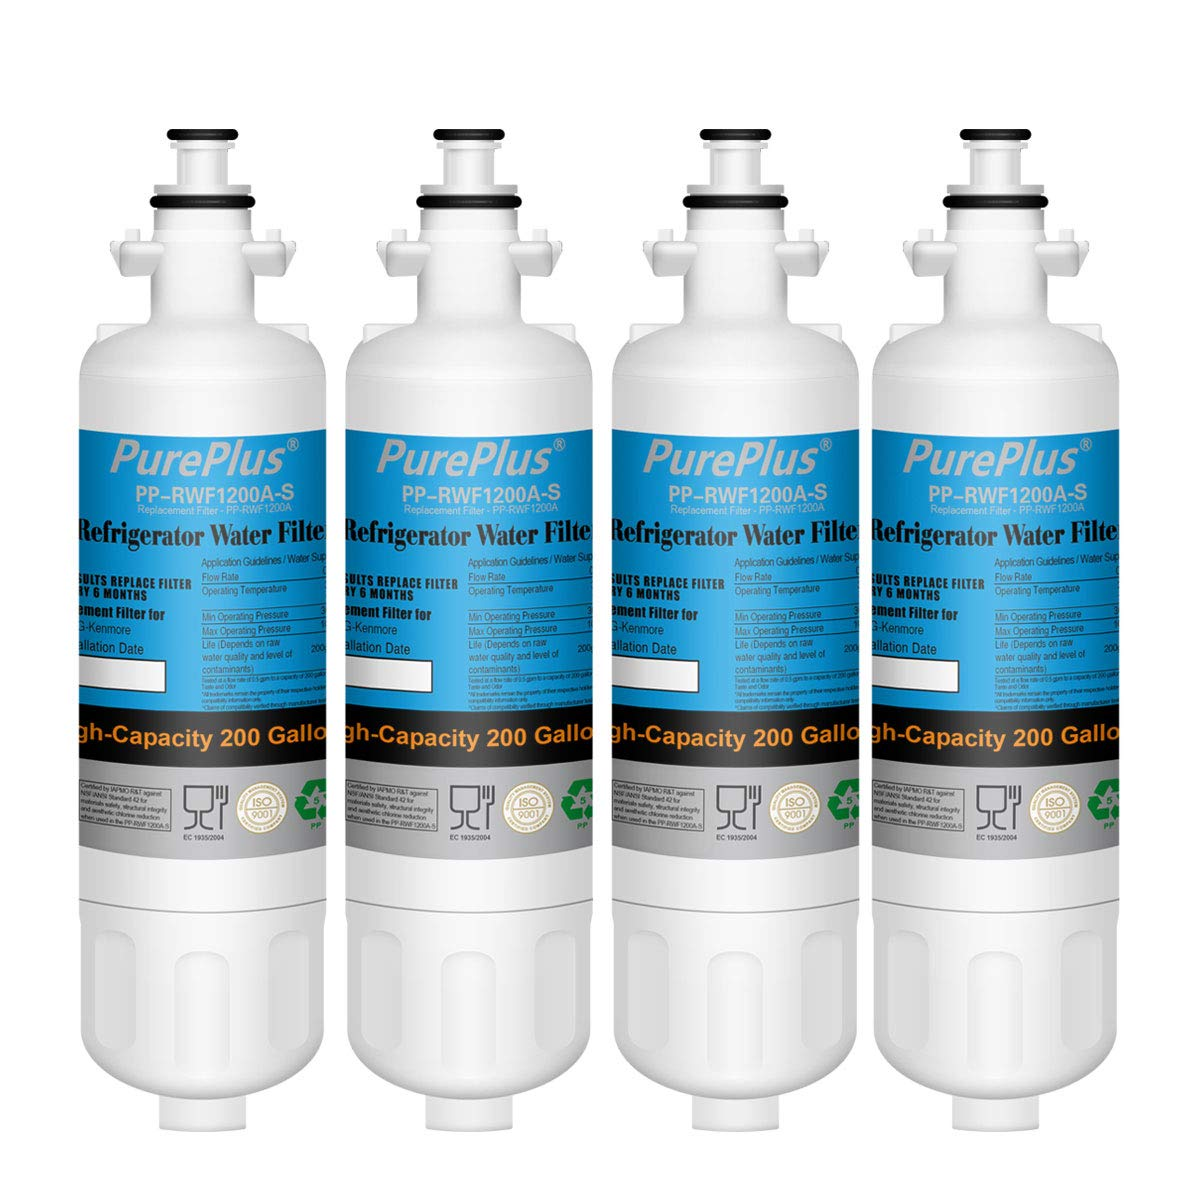 PurePlus Refrigerator Water Filter, Compatible with LG LT700P, Kenmore 9690, 46-9690, ADQ36006101, ADQ36006102 (Pack of 4)